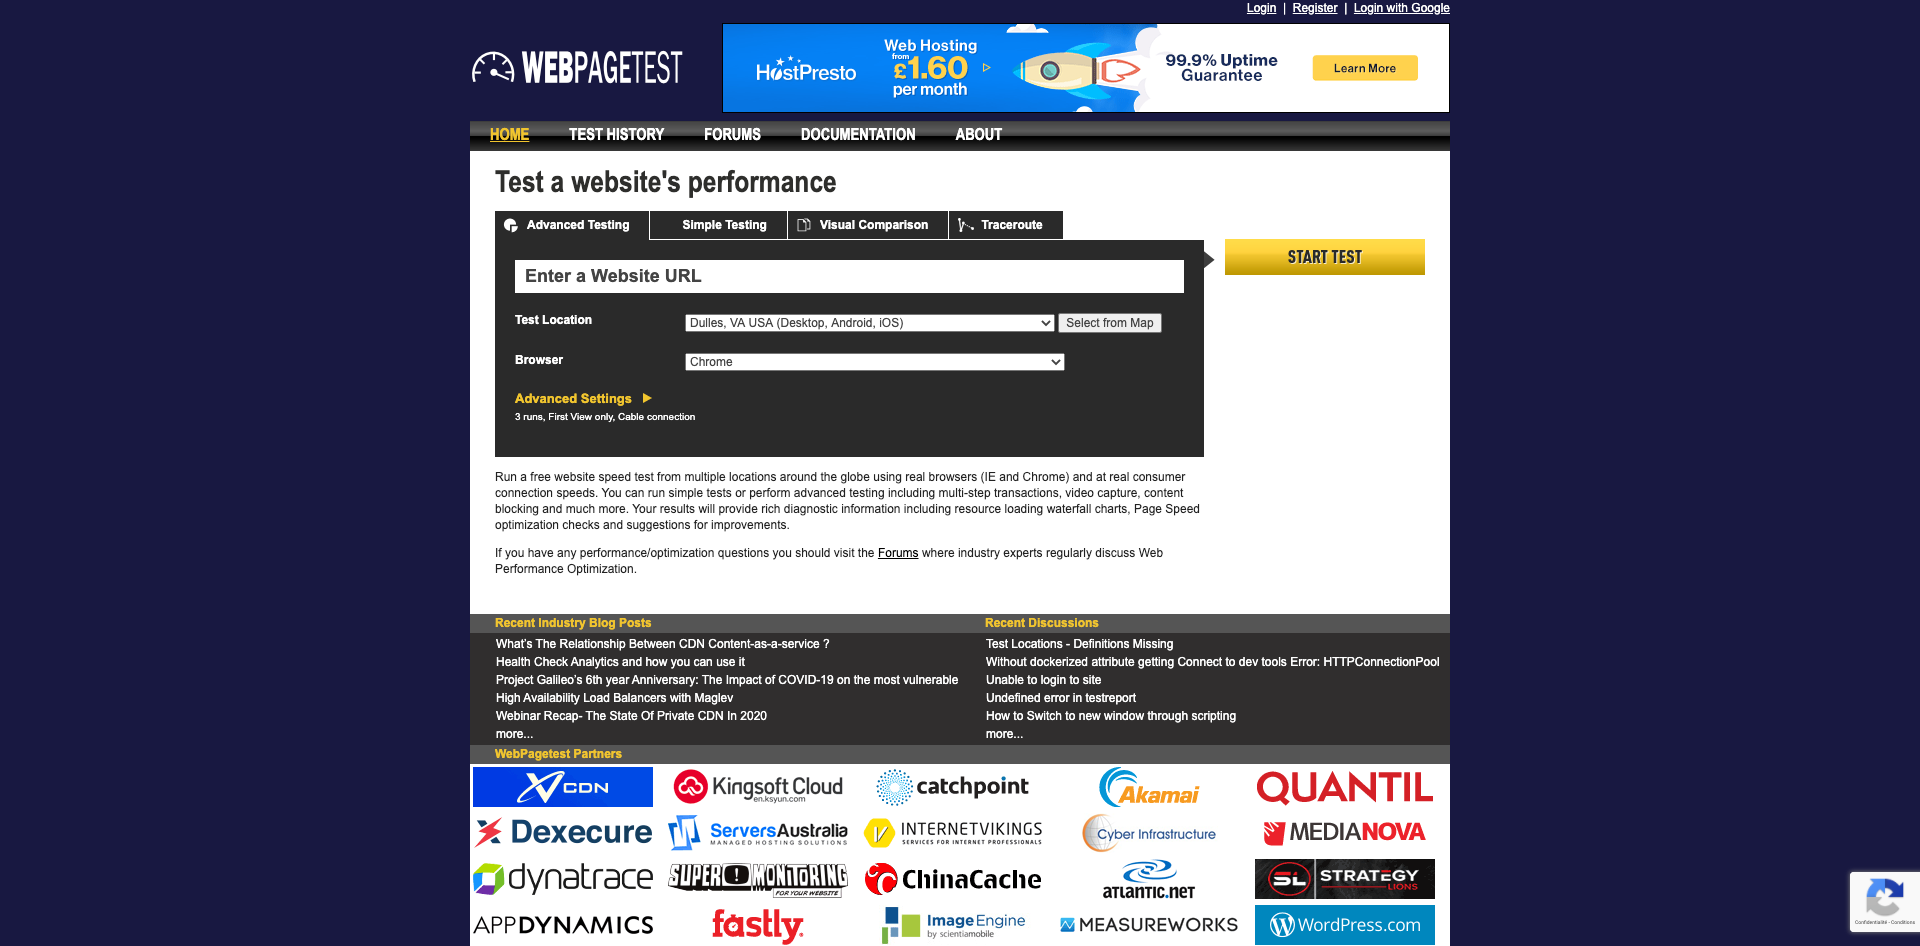 Test a website's performance